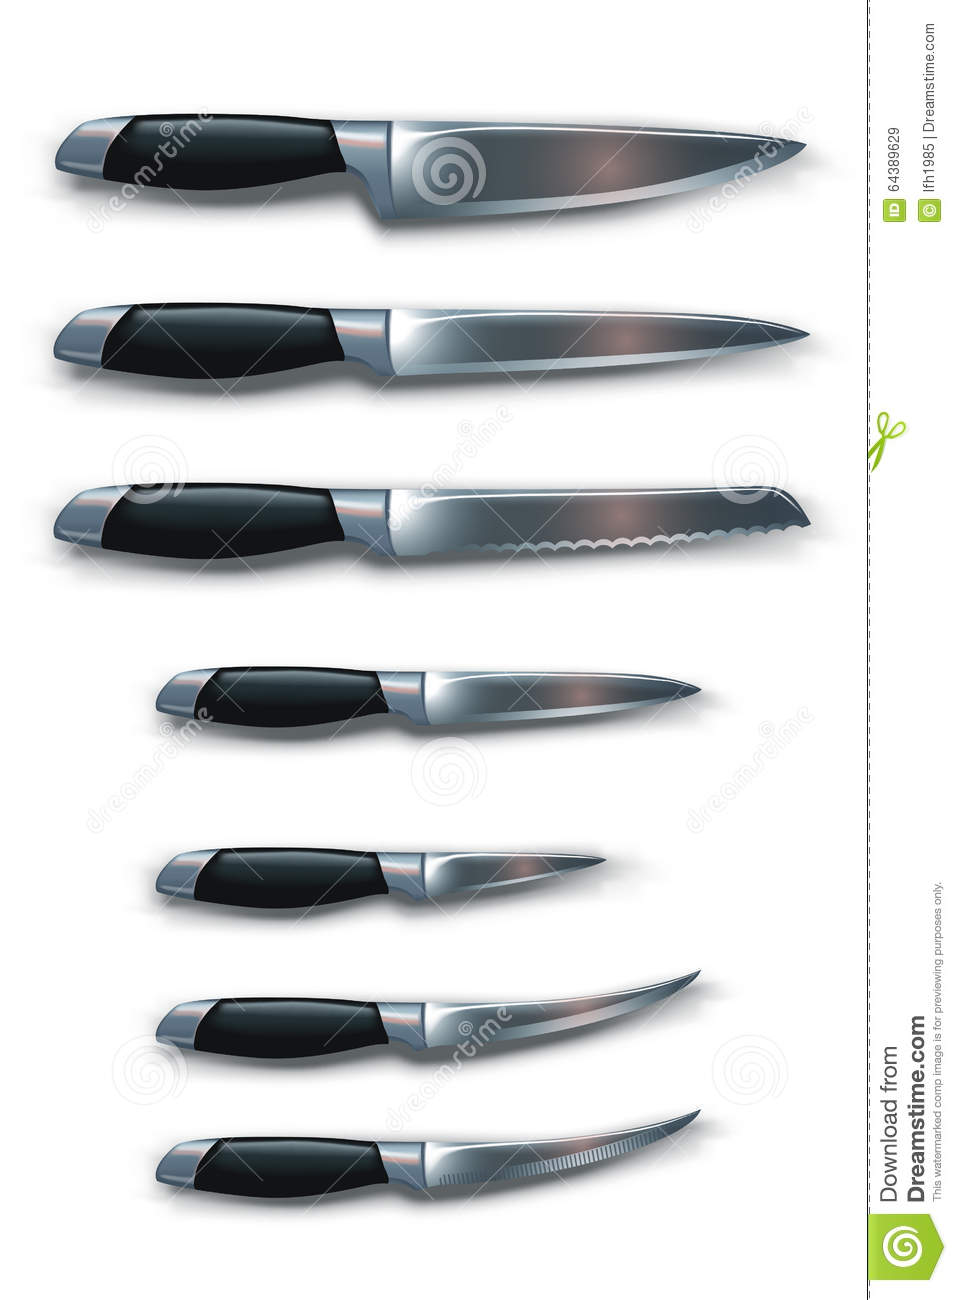 Picture Of Knives Stock Vector - Image: 64389629